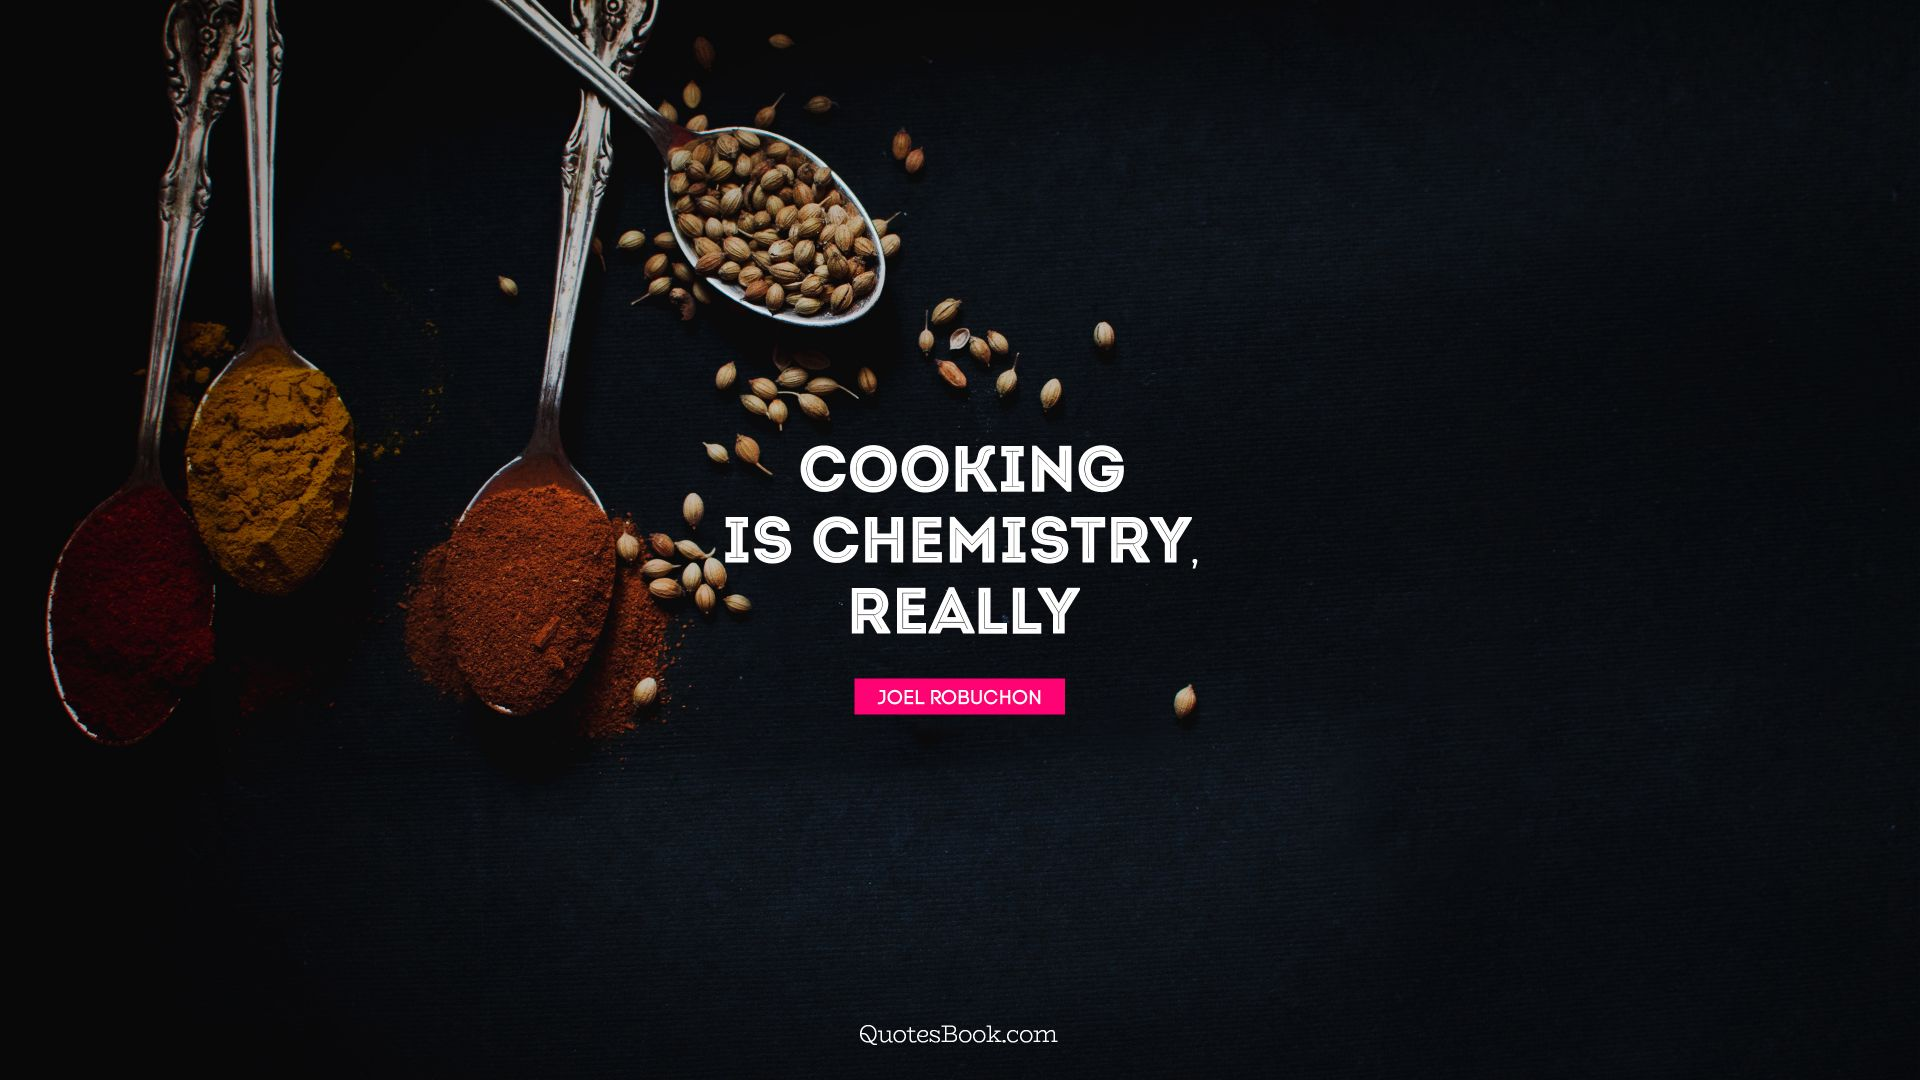 Cooking is chemistry, really. - Quote by Joel Robuchon